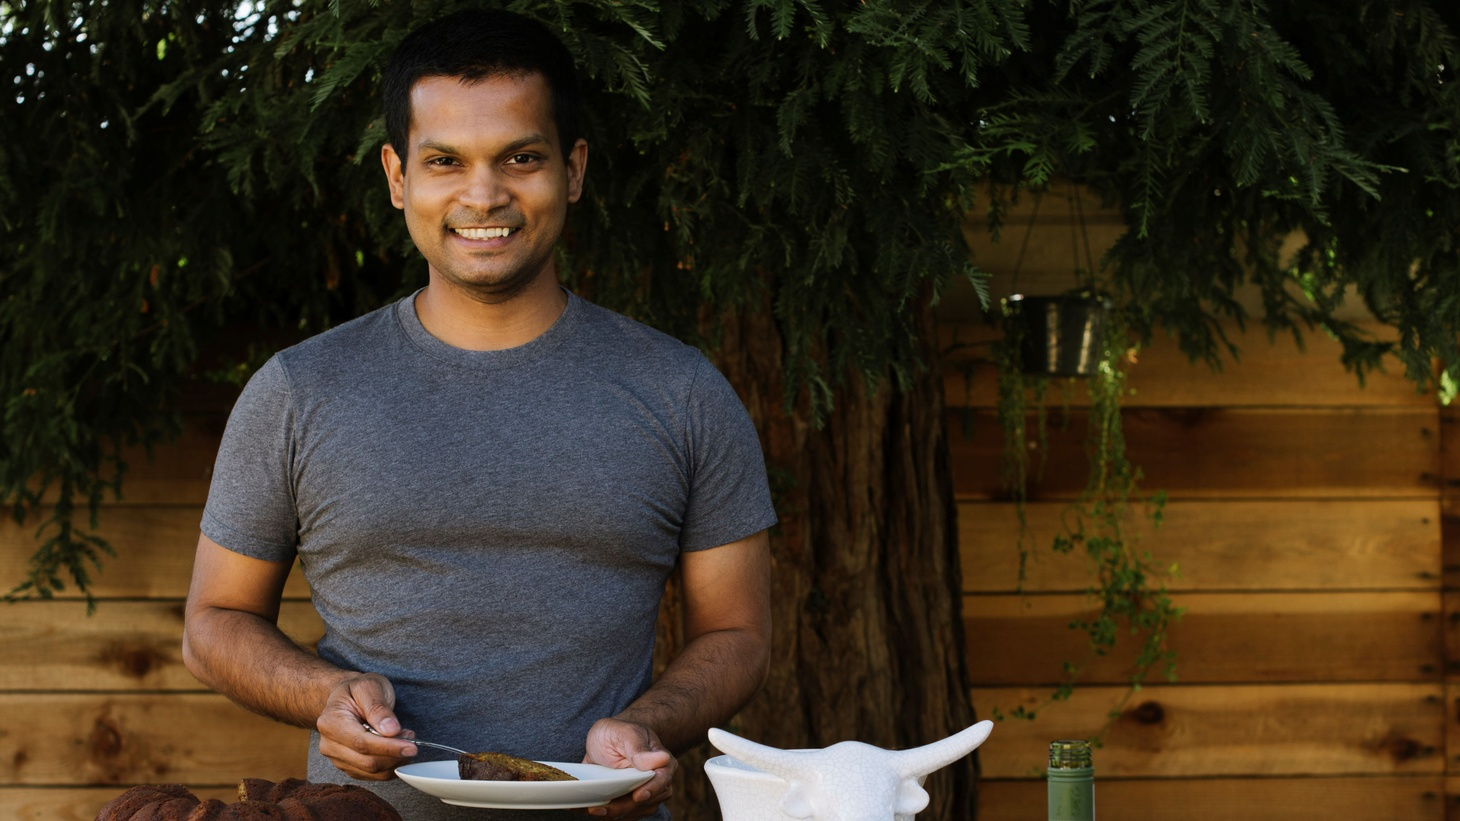 Nik Sharma's path has led from Mumbai to the U.S., and from the world of genetics to food writing